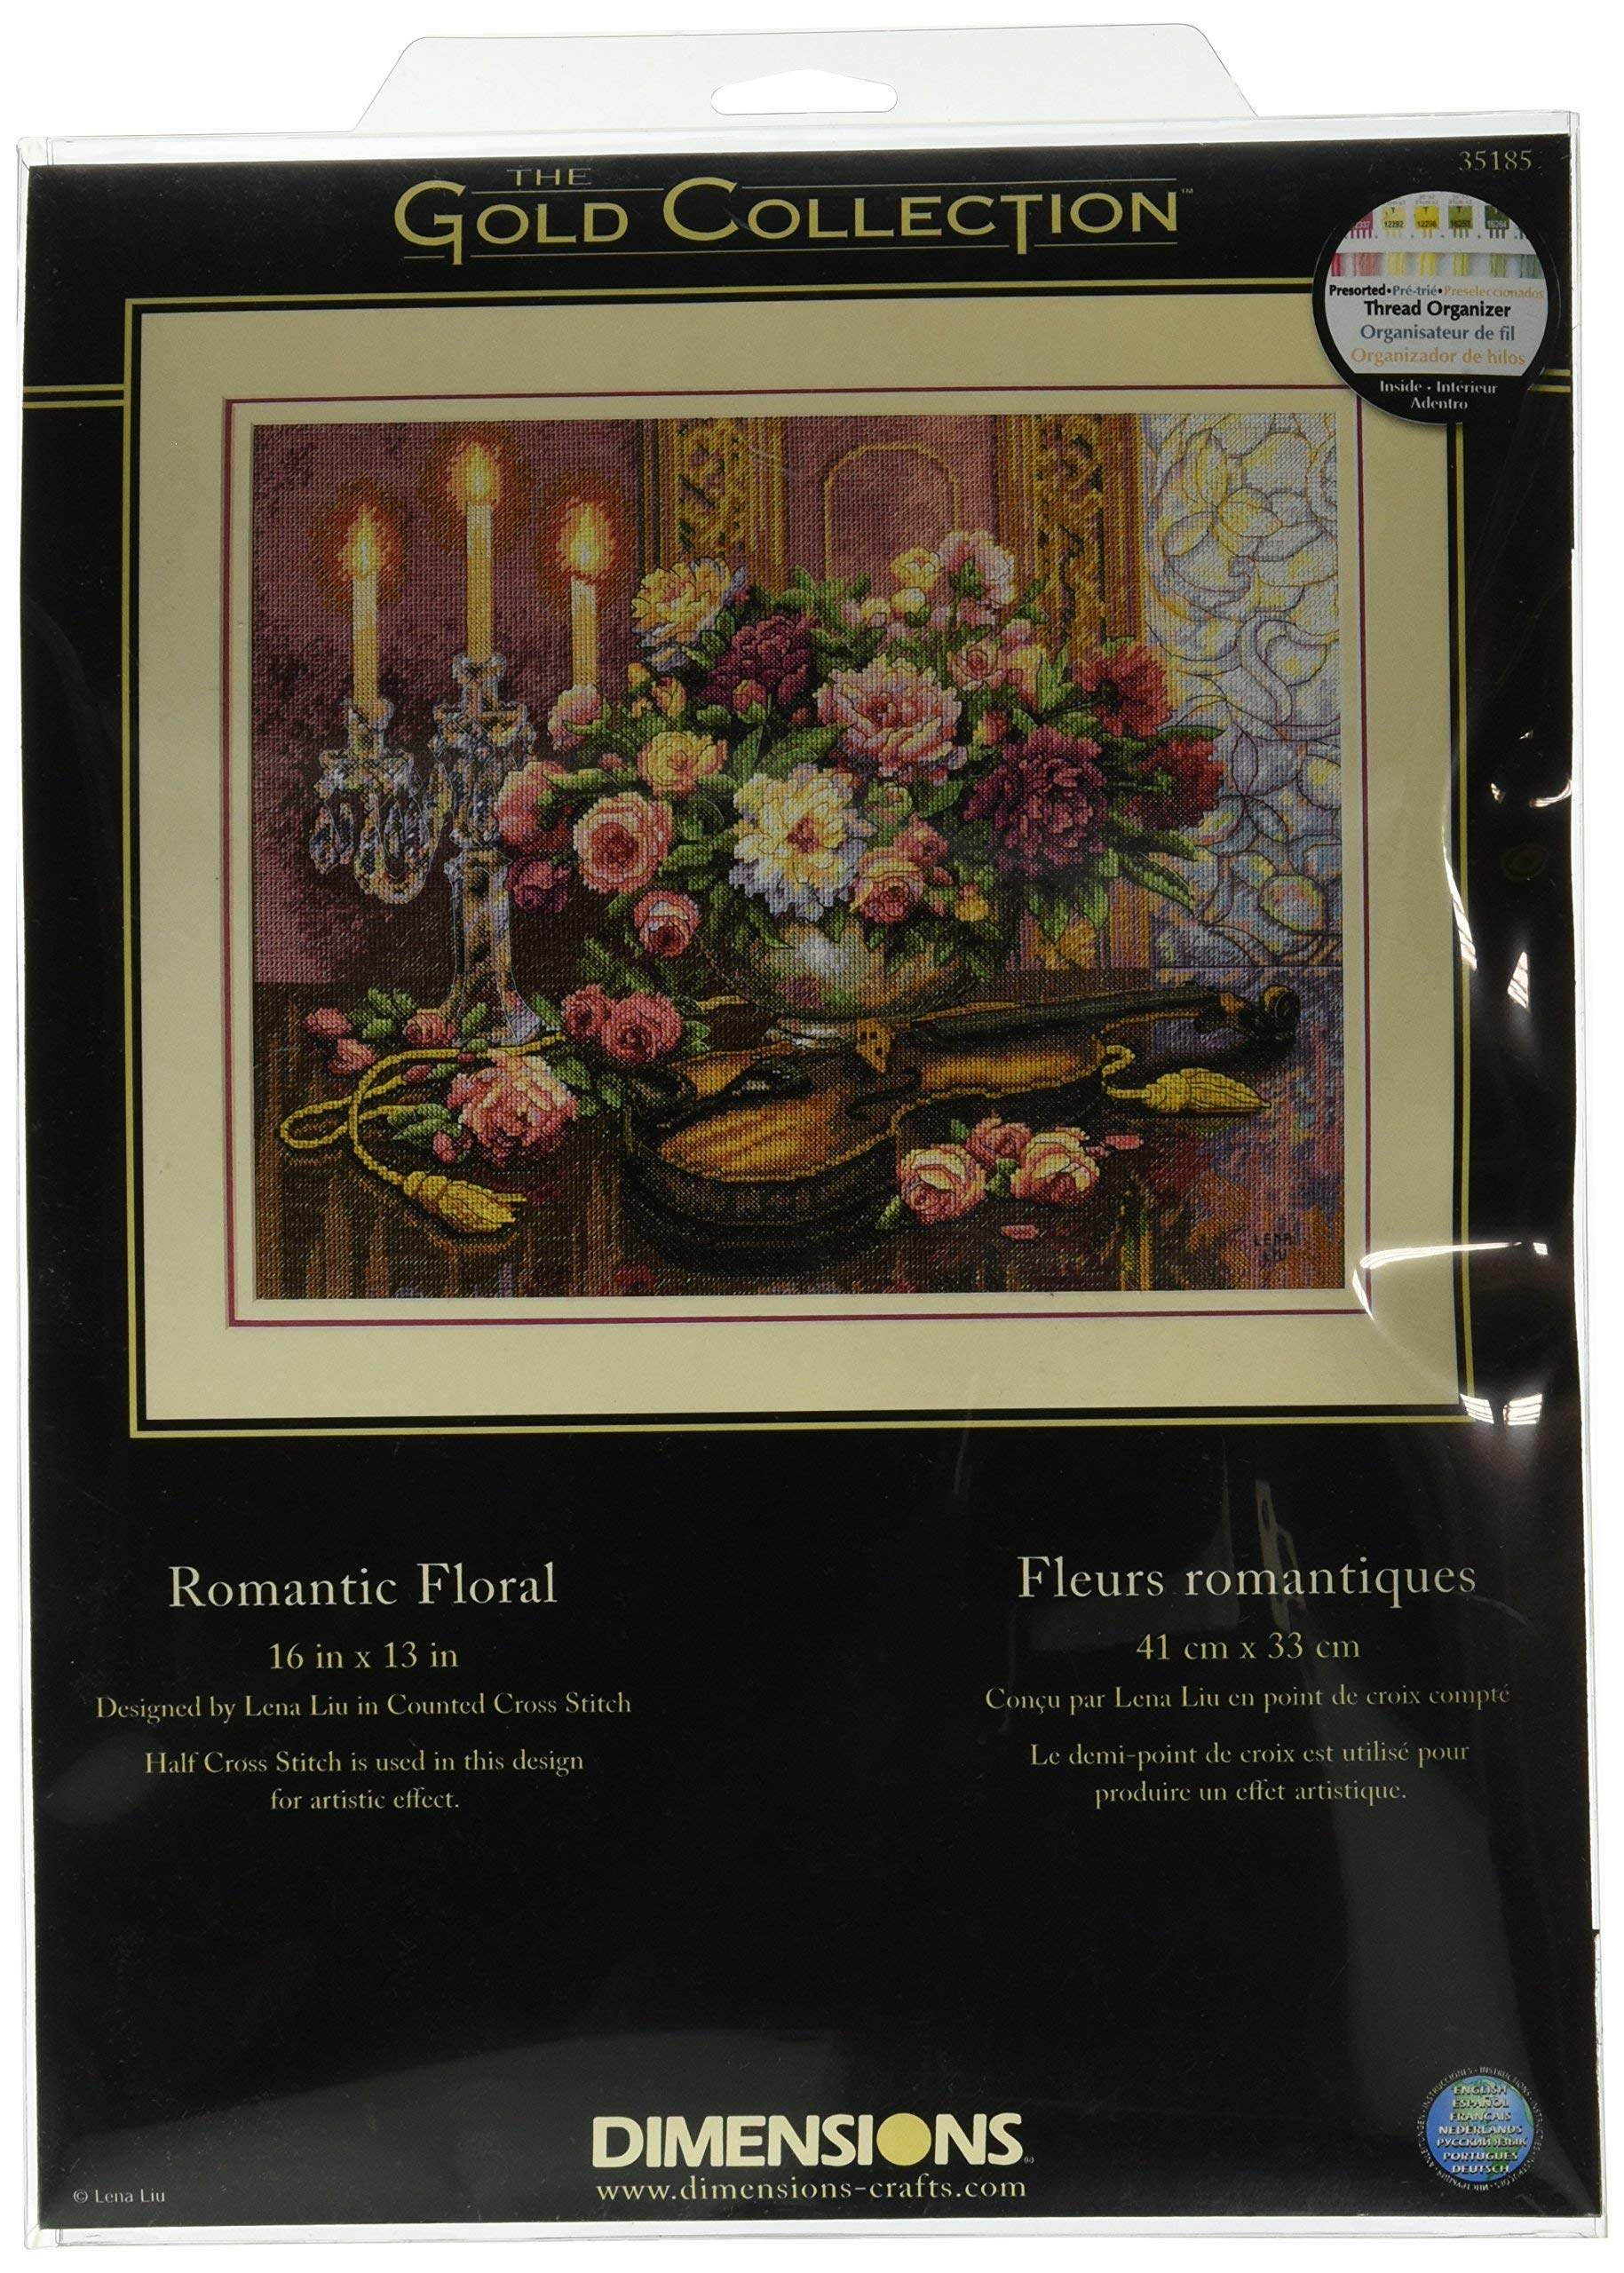 18 Count Beige Aida Dimensions Gold Collection Counted Cross Stitch Kit Twilight Bridge 14 x 11